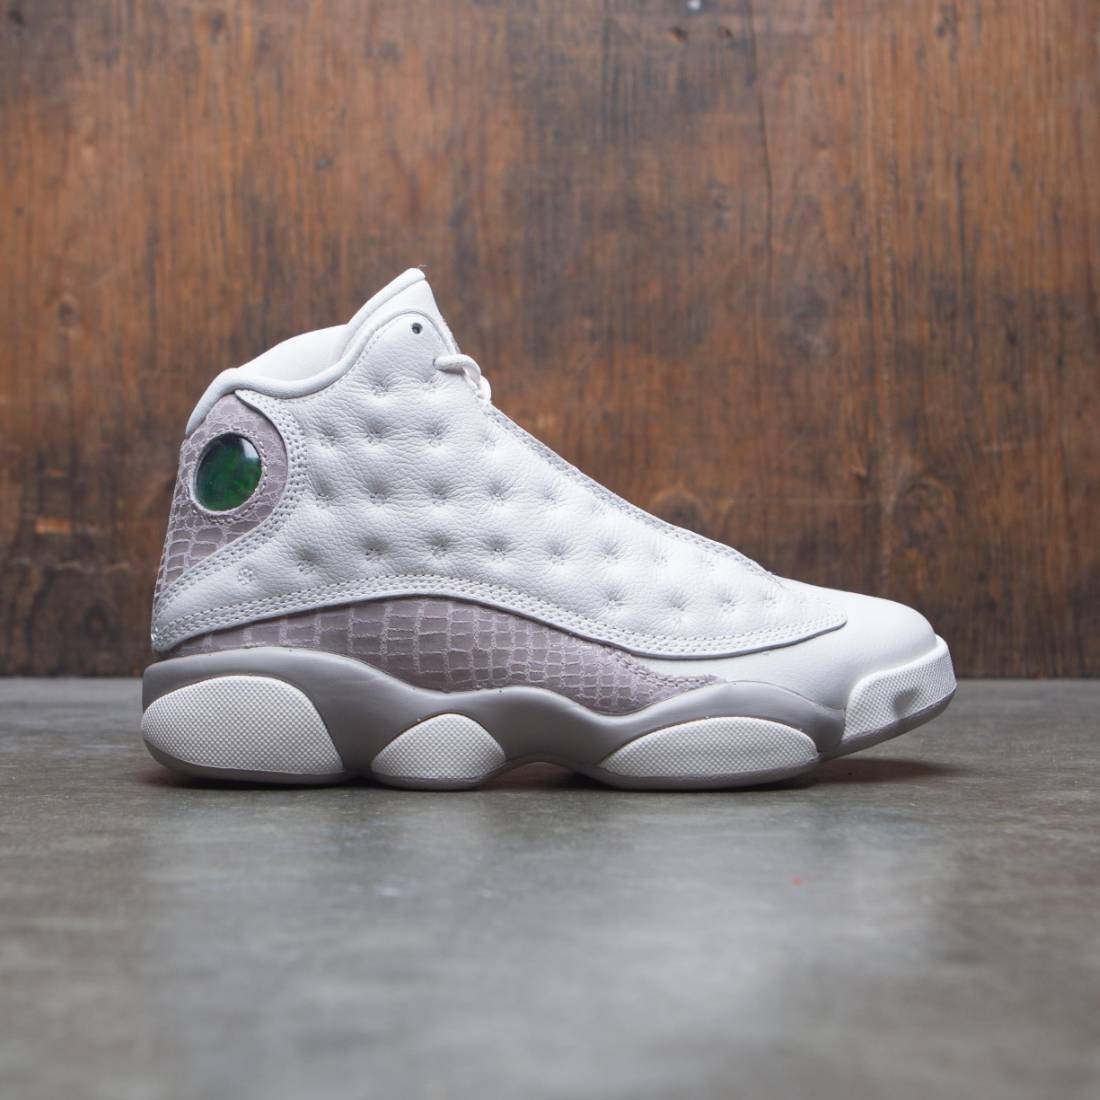 outlet boutique reputable site online retailer AIR JORDAN 13 RETRO WMNS Women (phantom / moon particle)